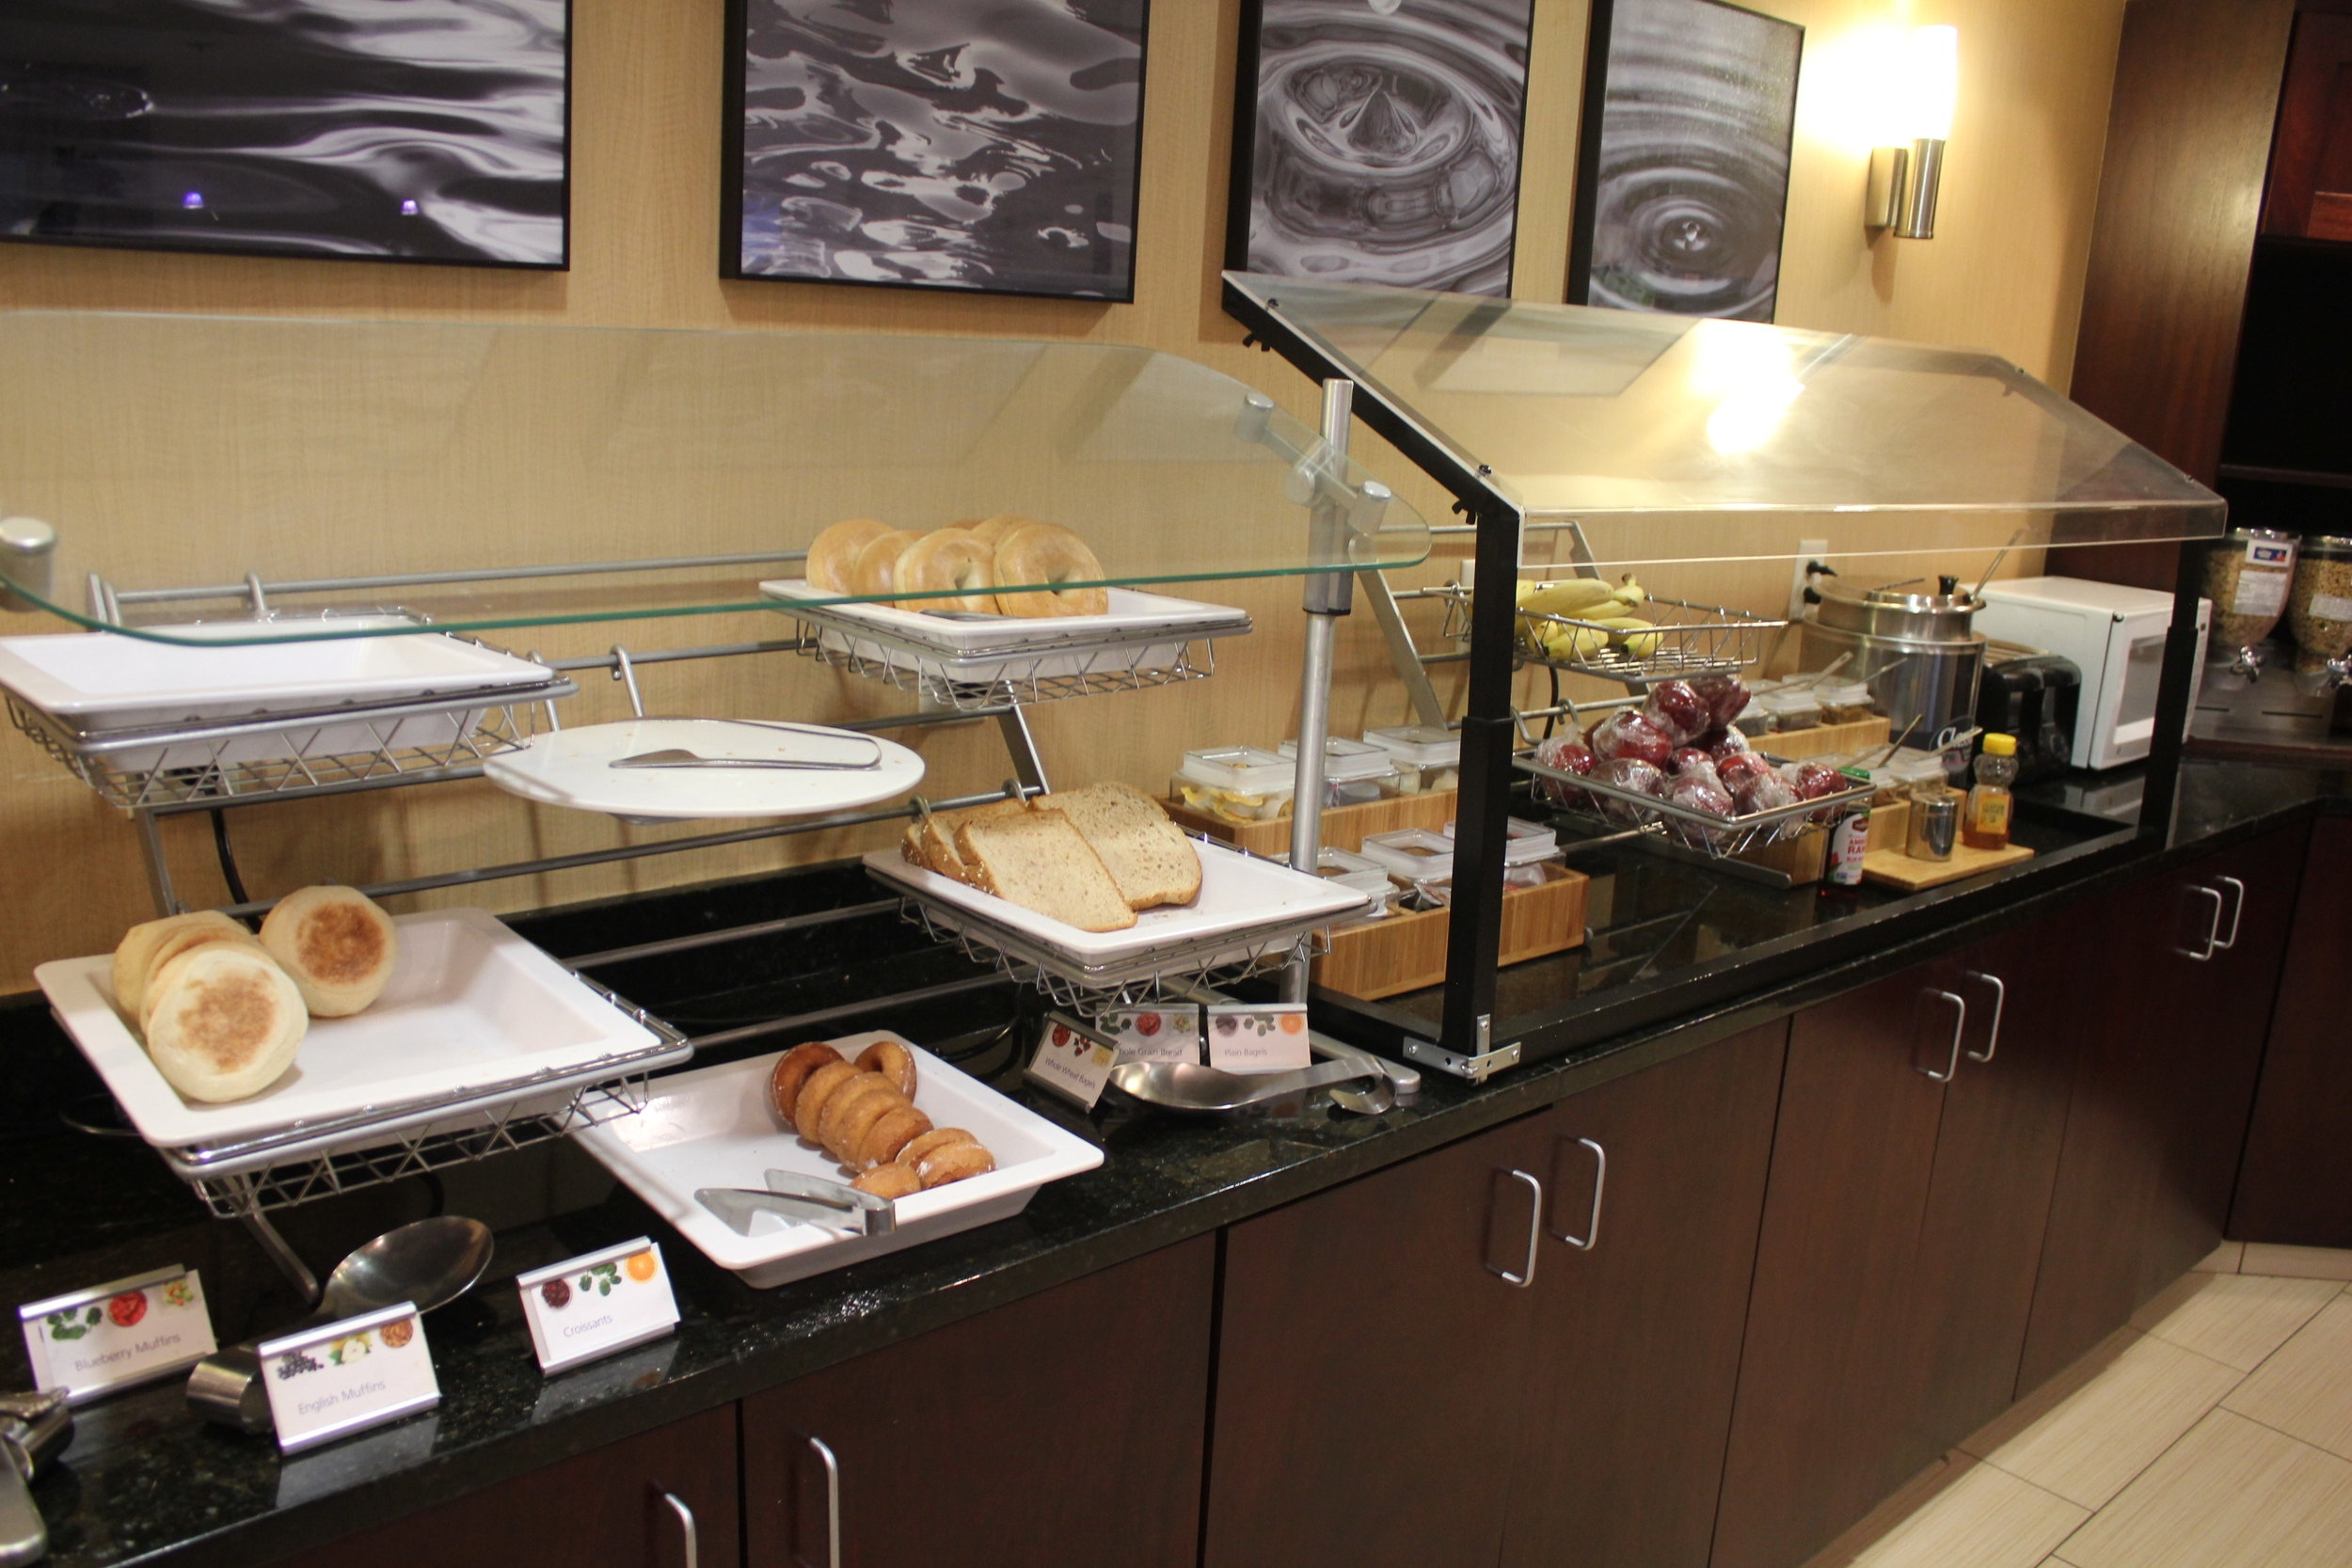 SpringHill Suites Charlotte Airport – Breakfast selection